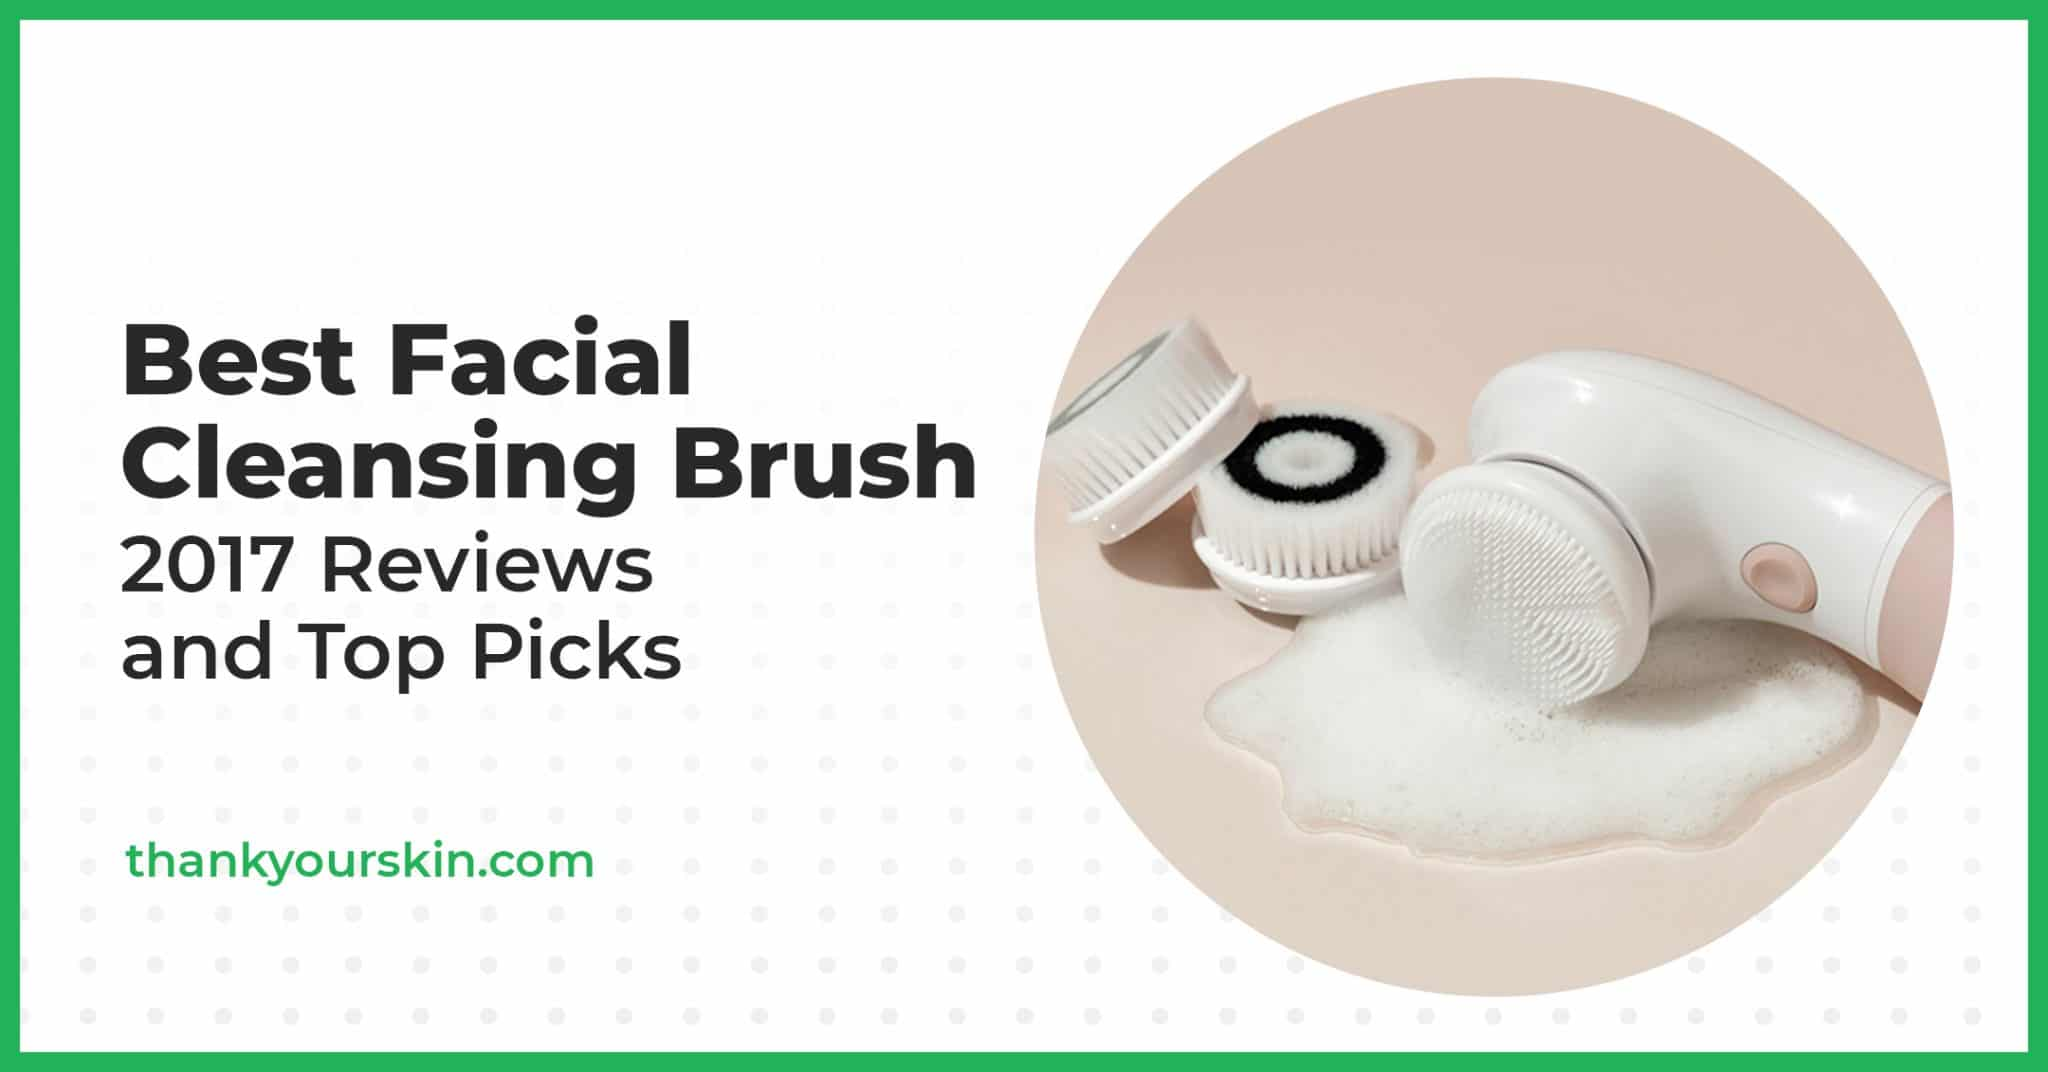 79-[Best Facial Cleansing Brush]